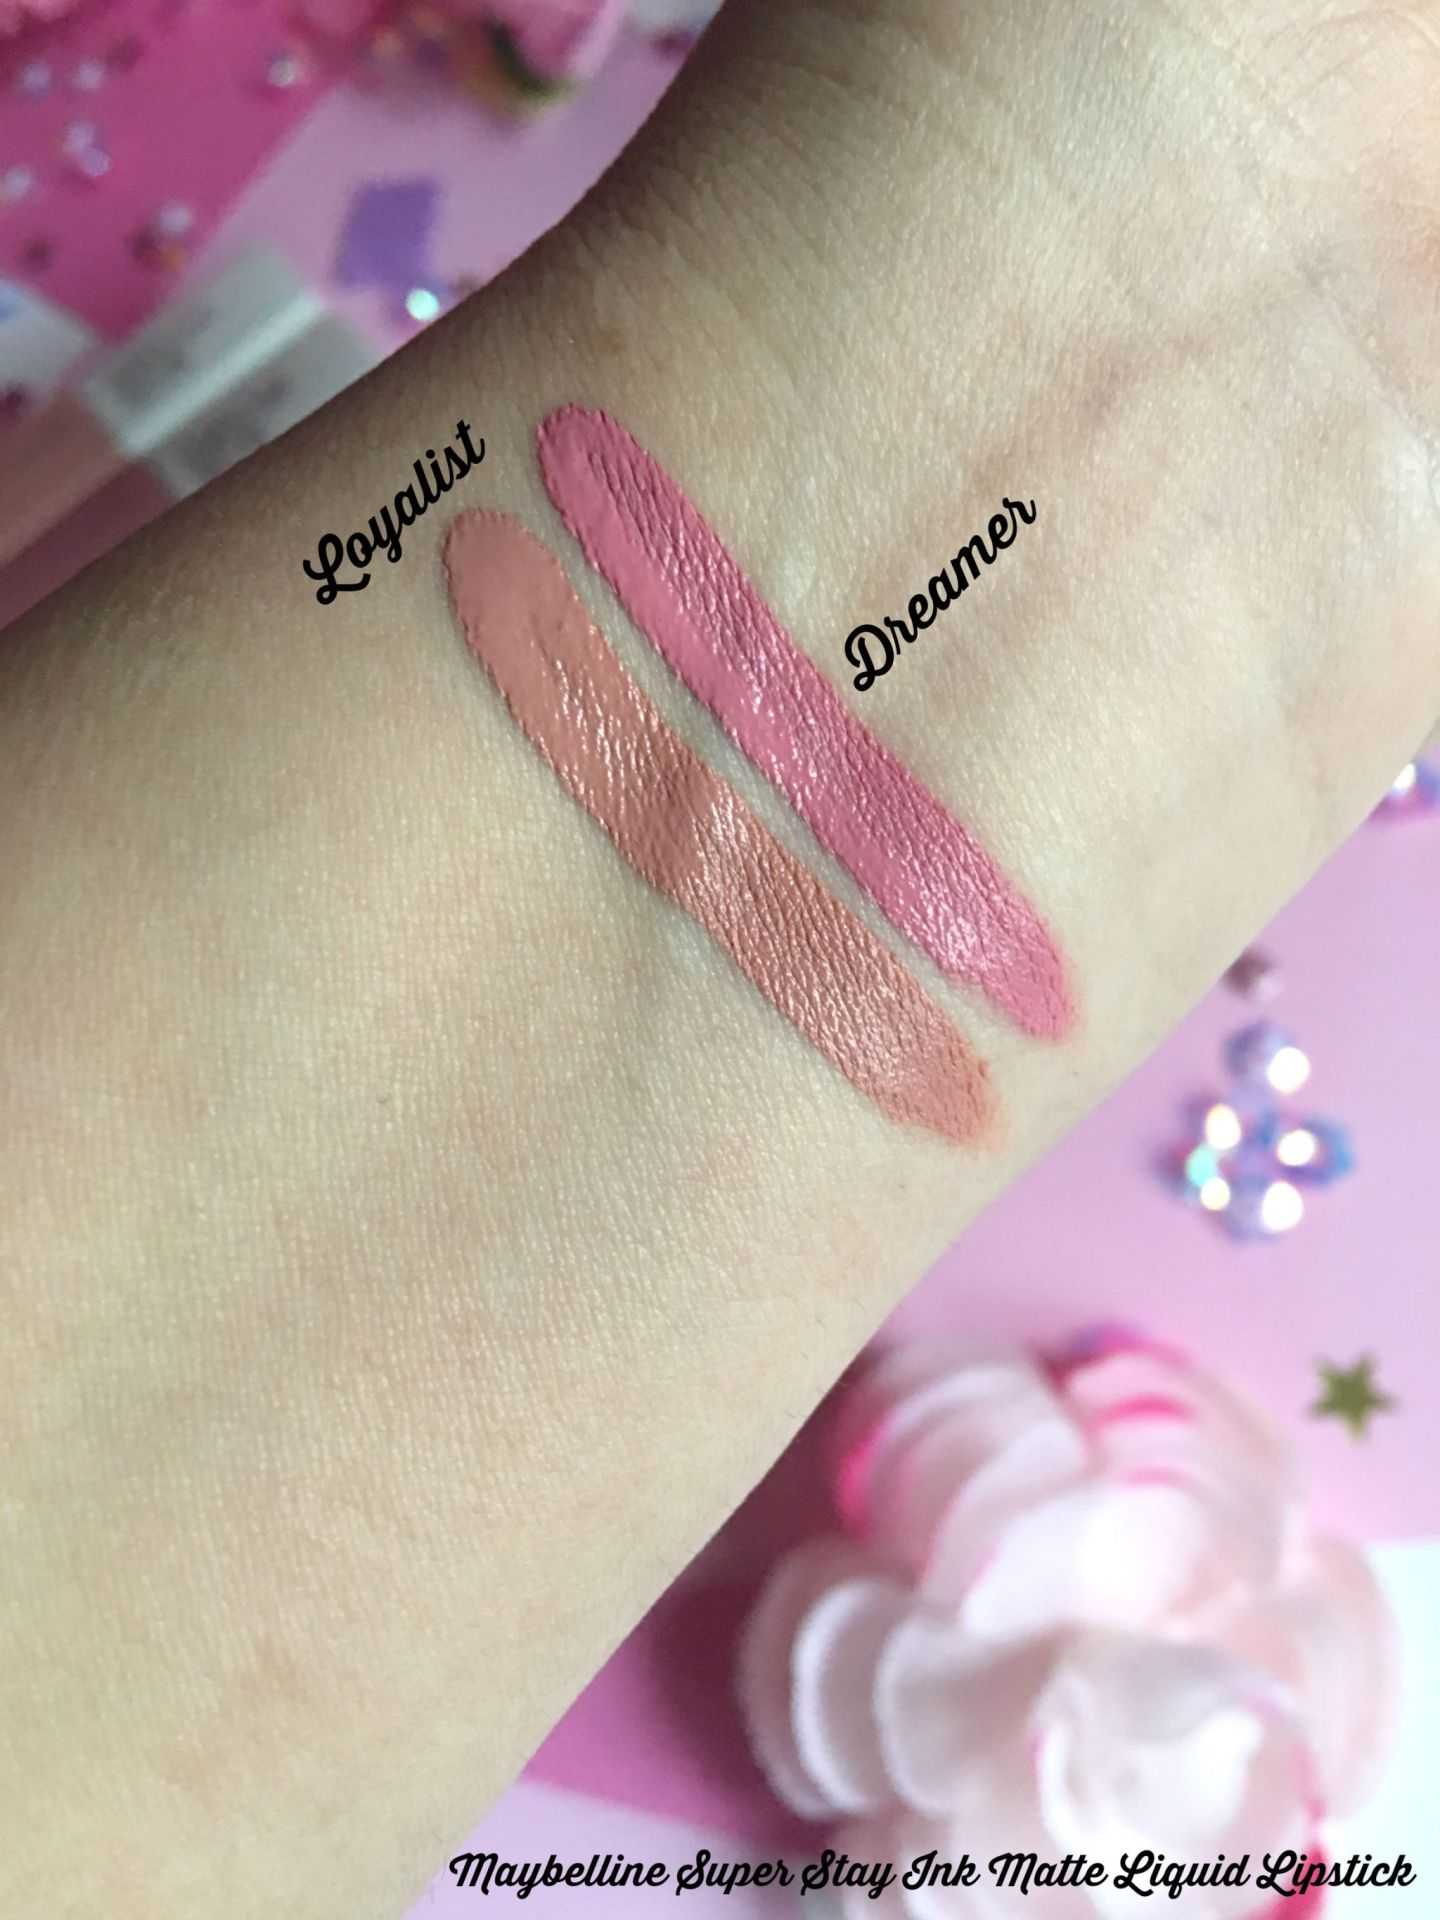 Maybelline Superstay Matte Ink Liquid Lipstick Musings Of A Makeup Super Stay 8